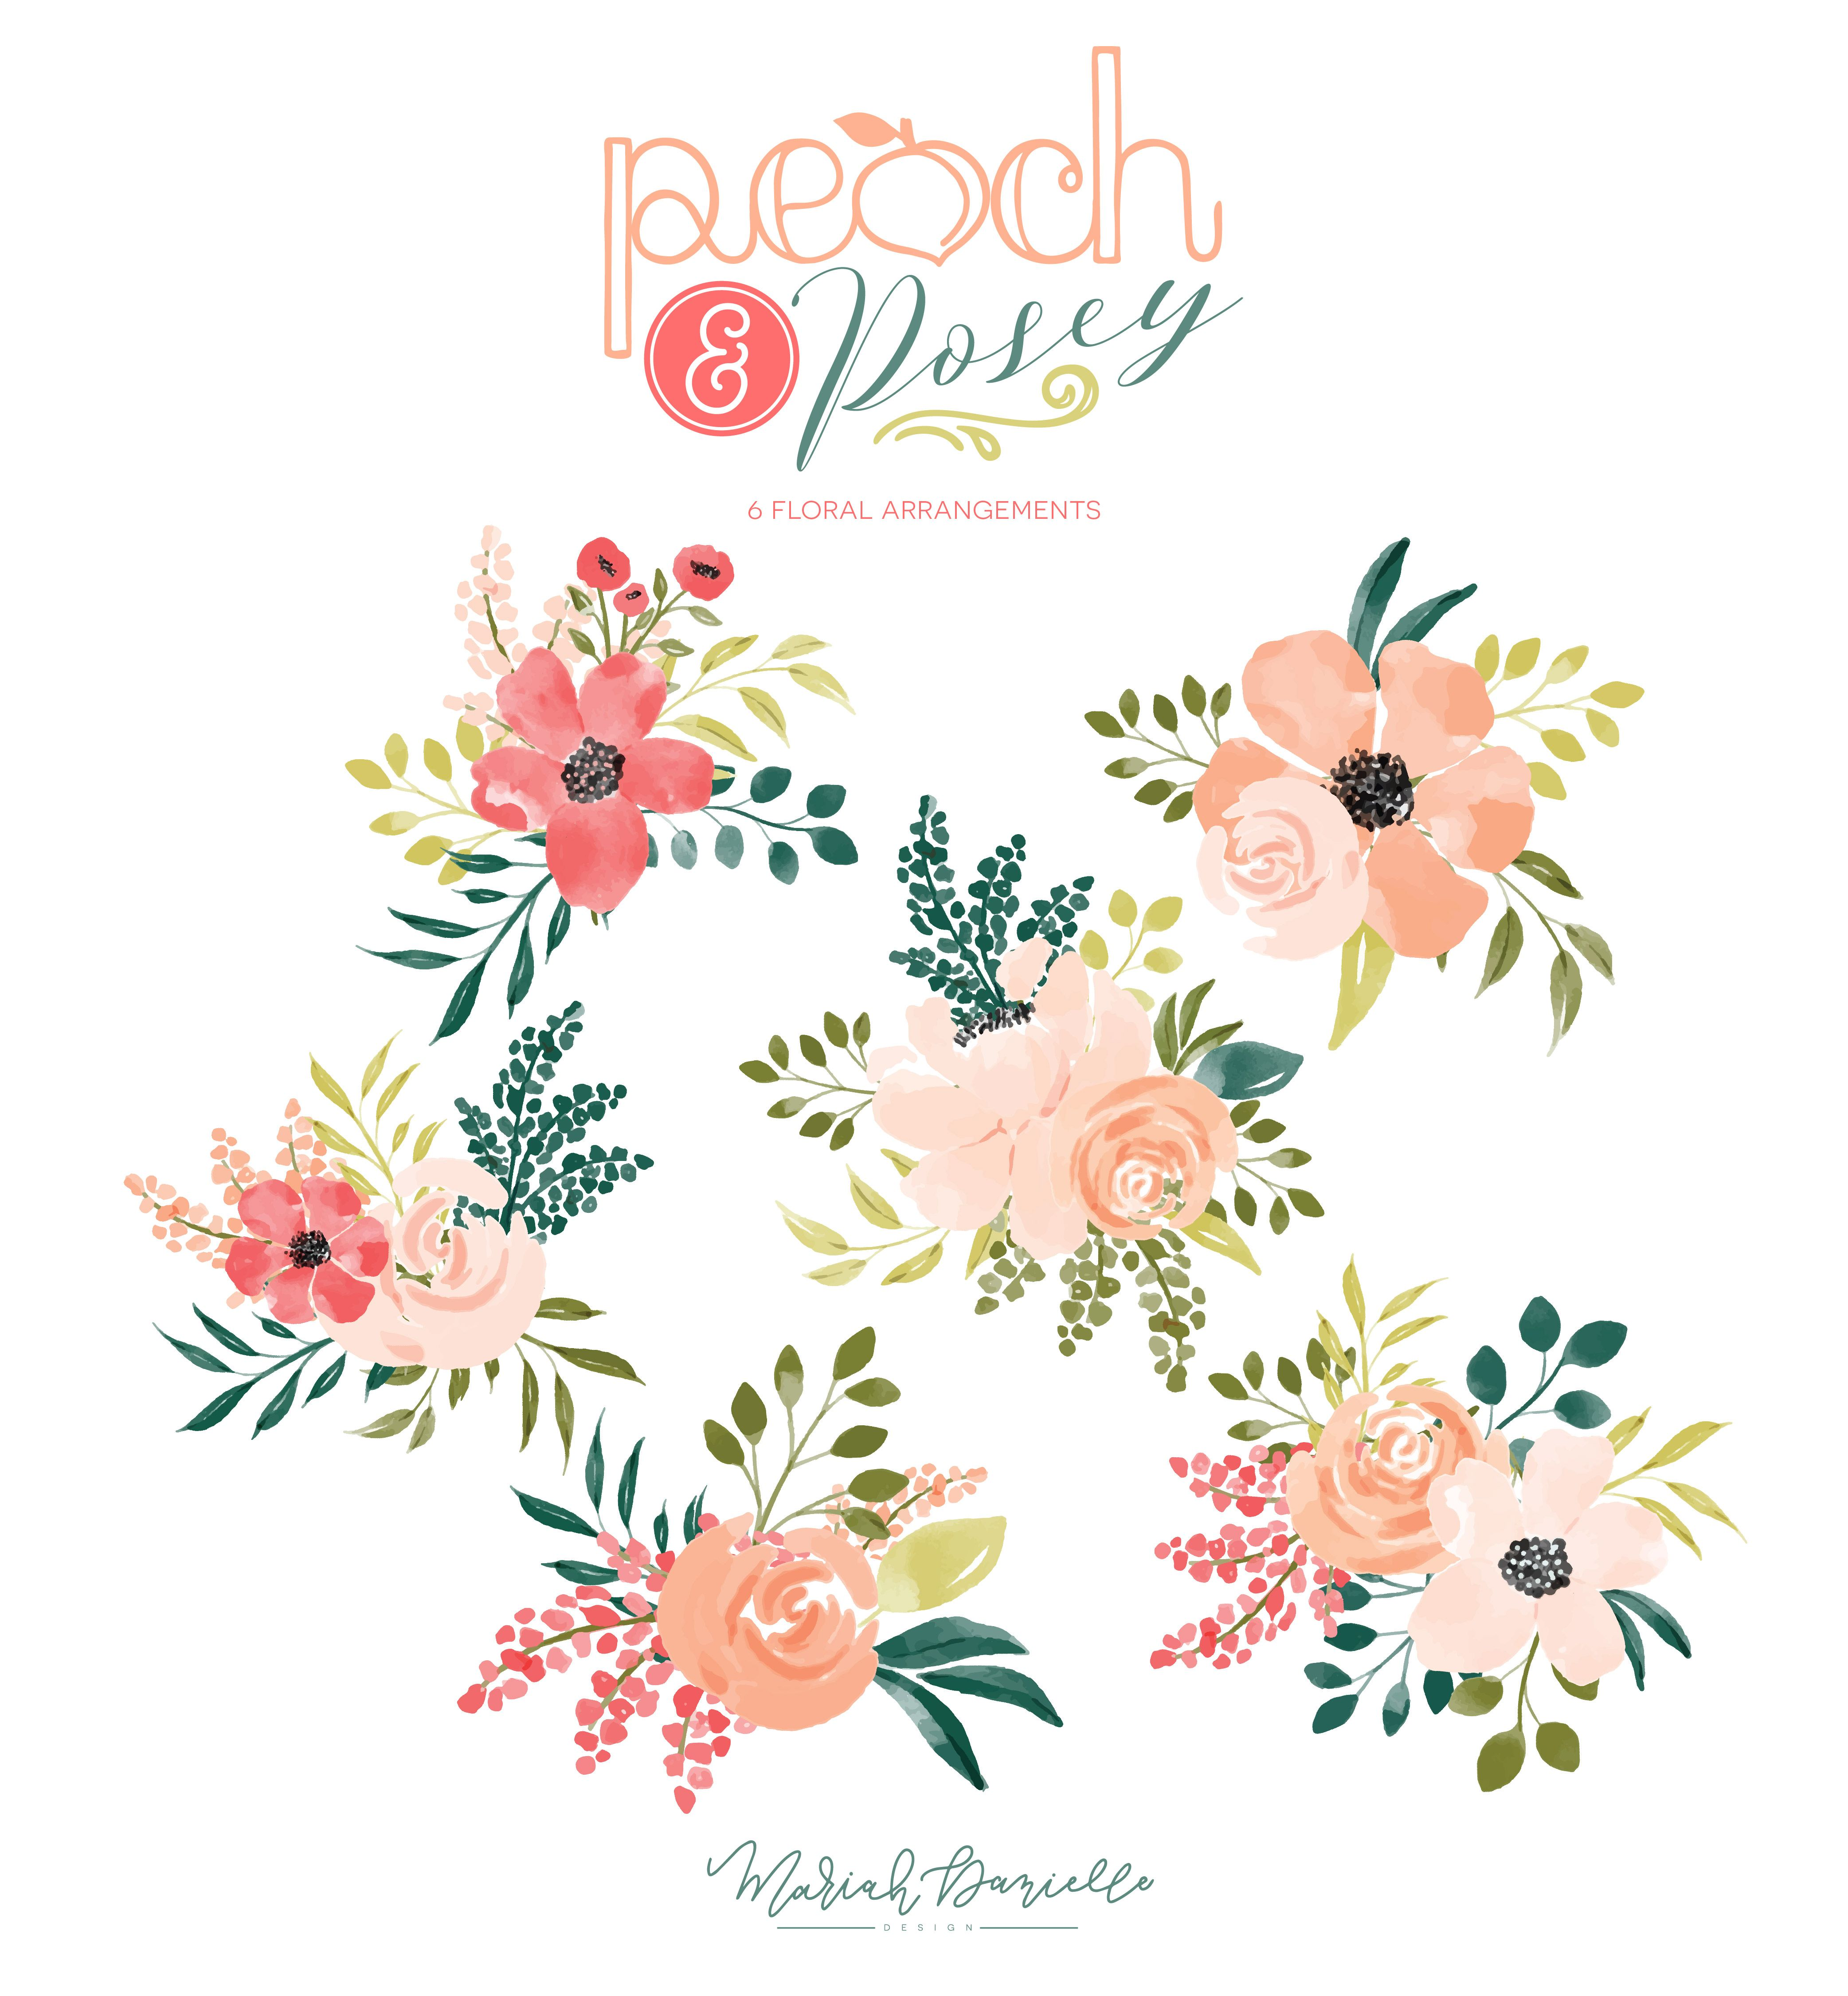 Pink and turquoise wedding bouquet cliparts jpg transparent Peach & Posey Floral Bouquet Set - Illustrations | Hand ... jpg transparent